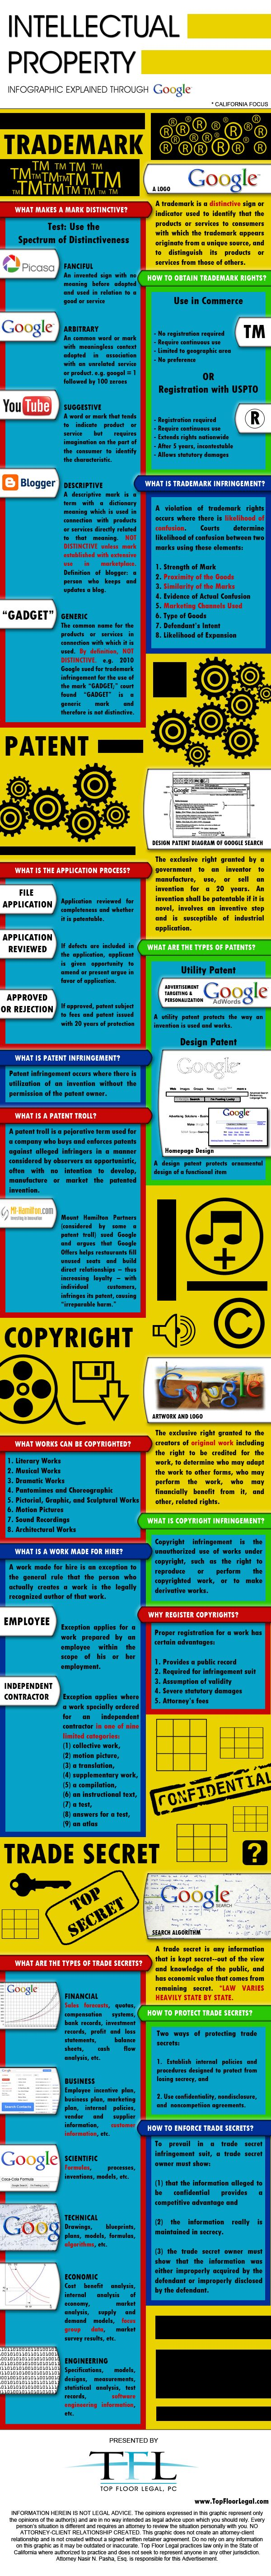 Intellectual Property #infographic